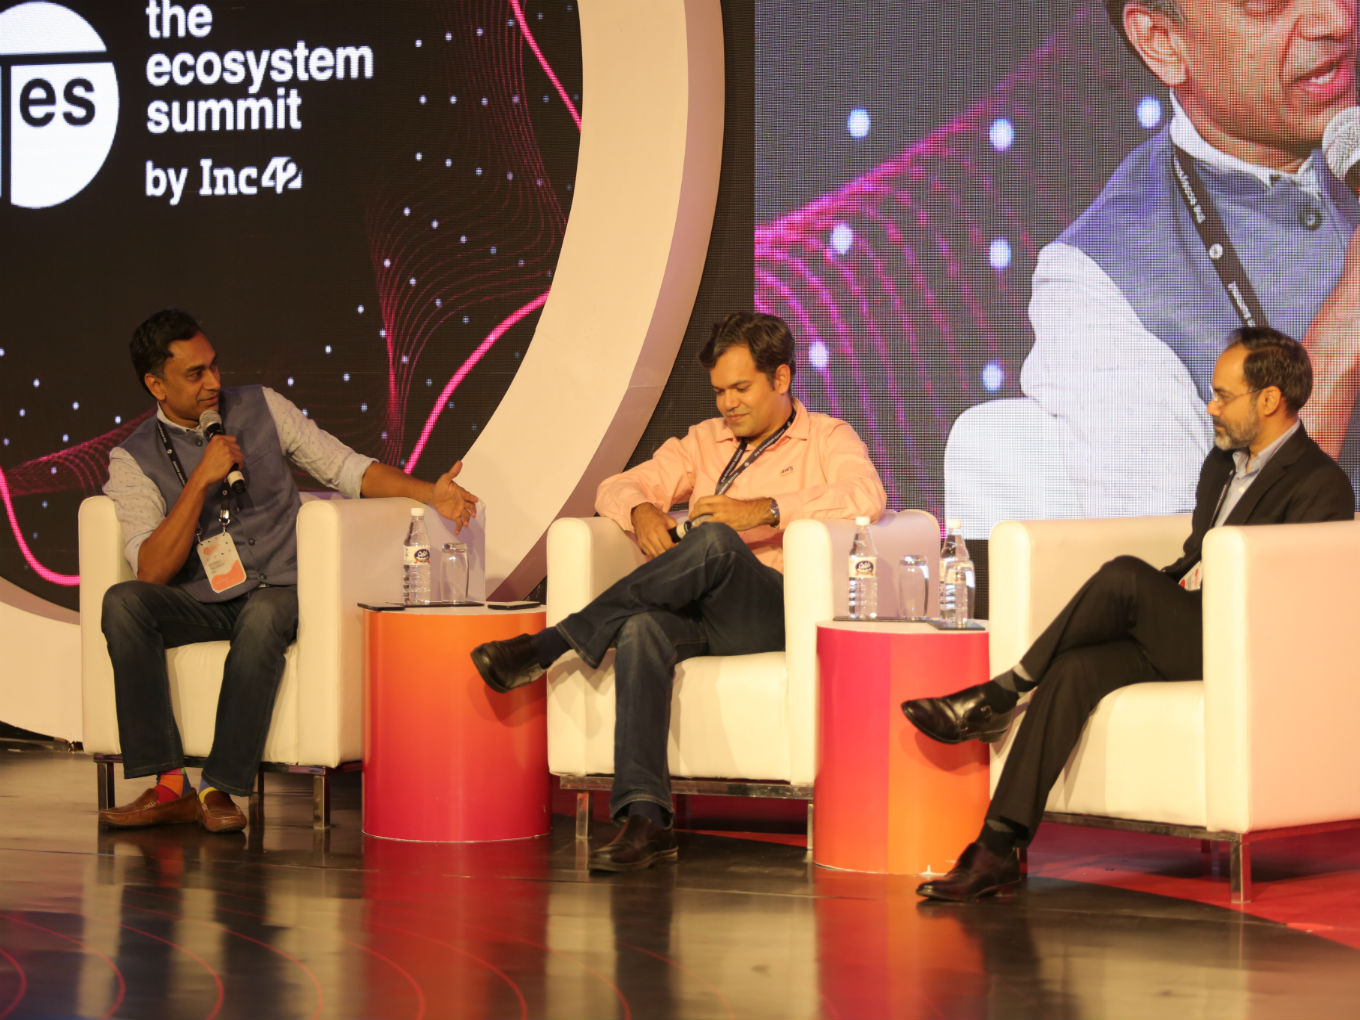 Advice To Indian Startups And Corporates: Make Innovation, Not War